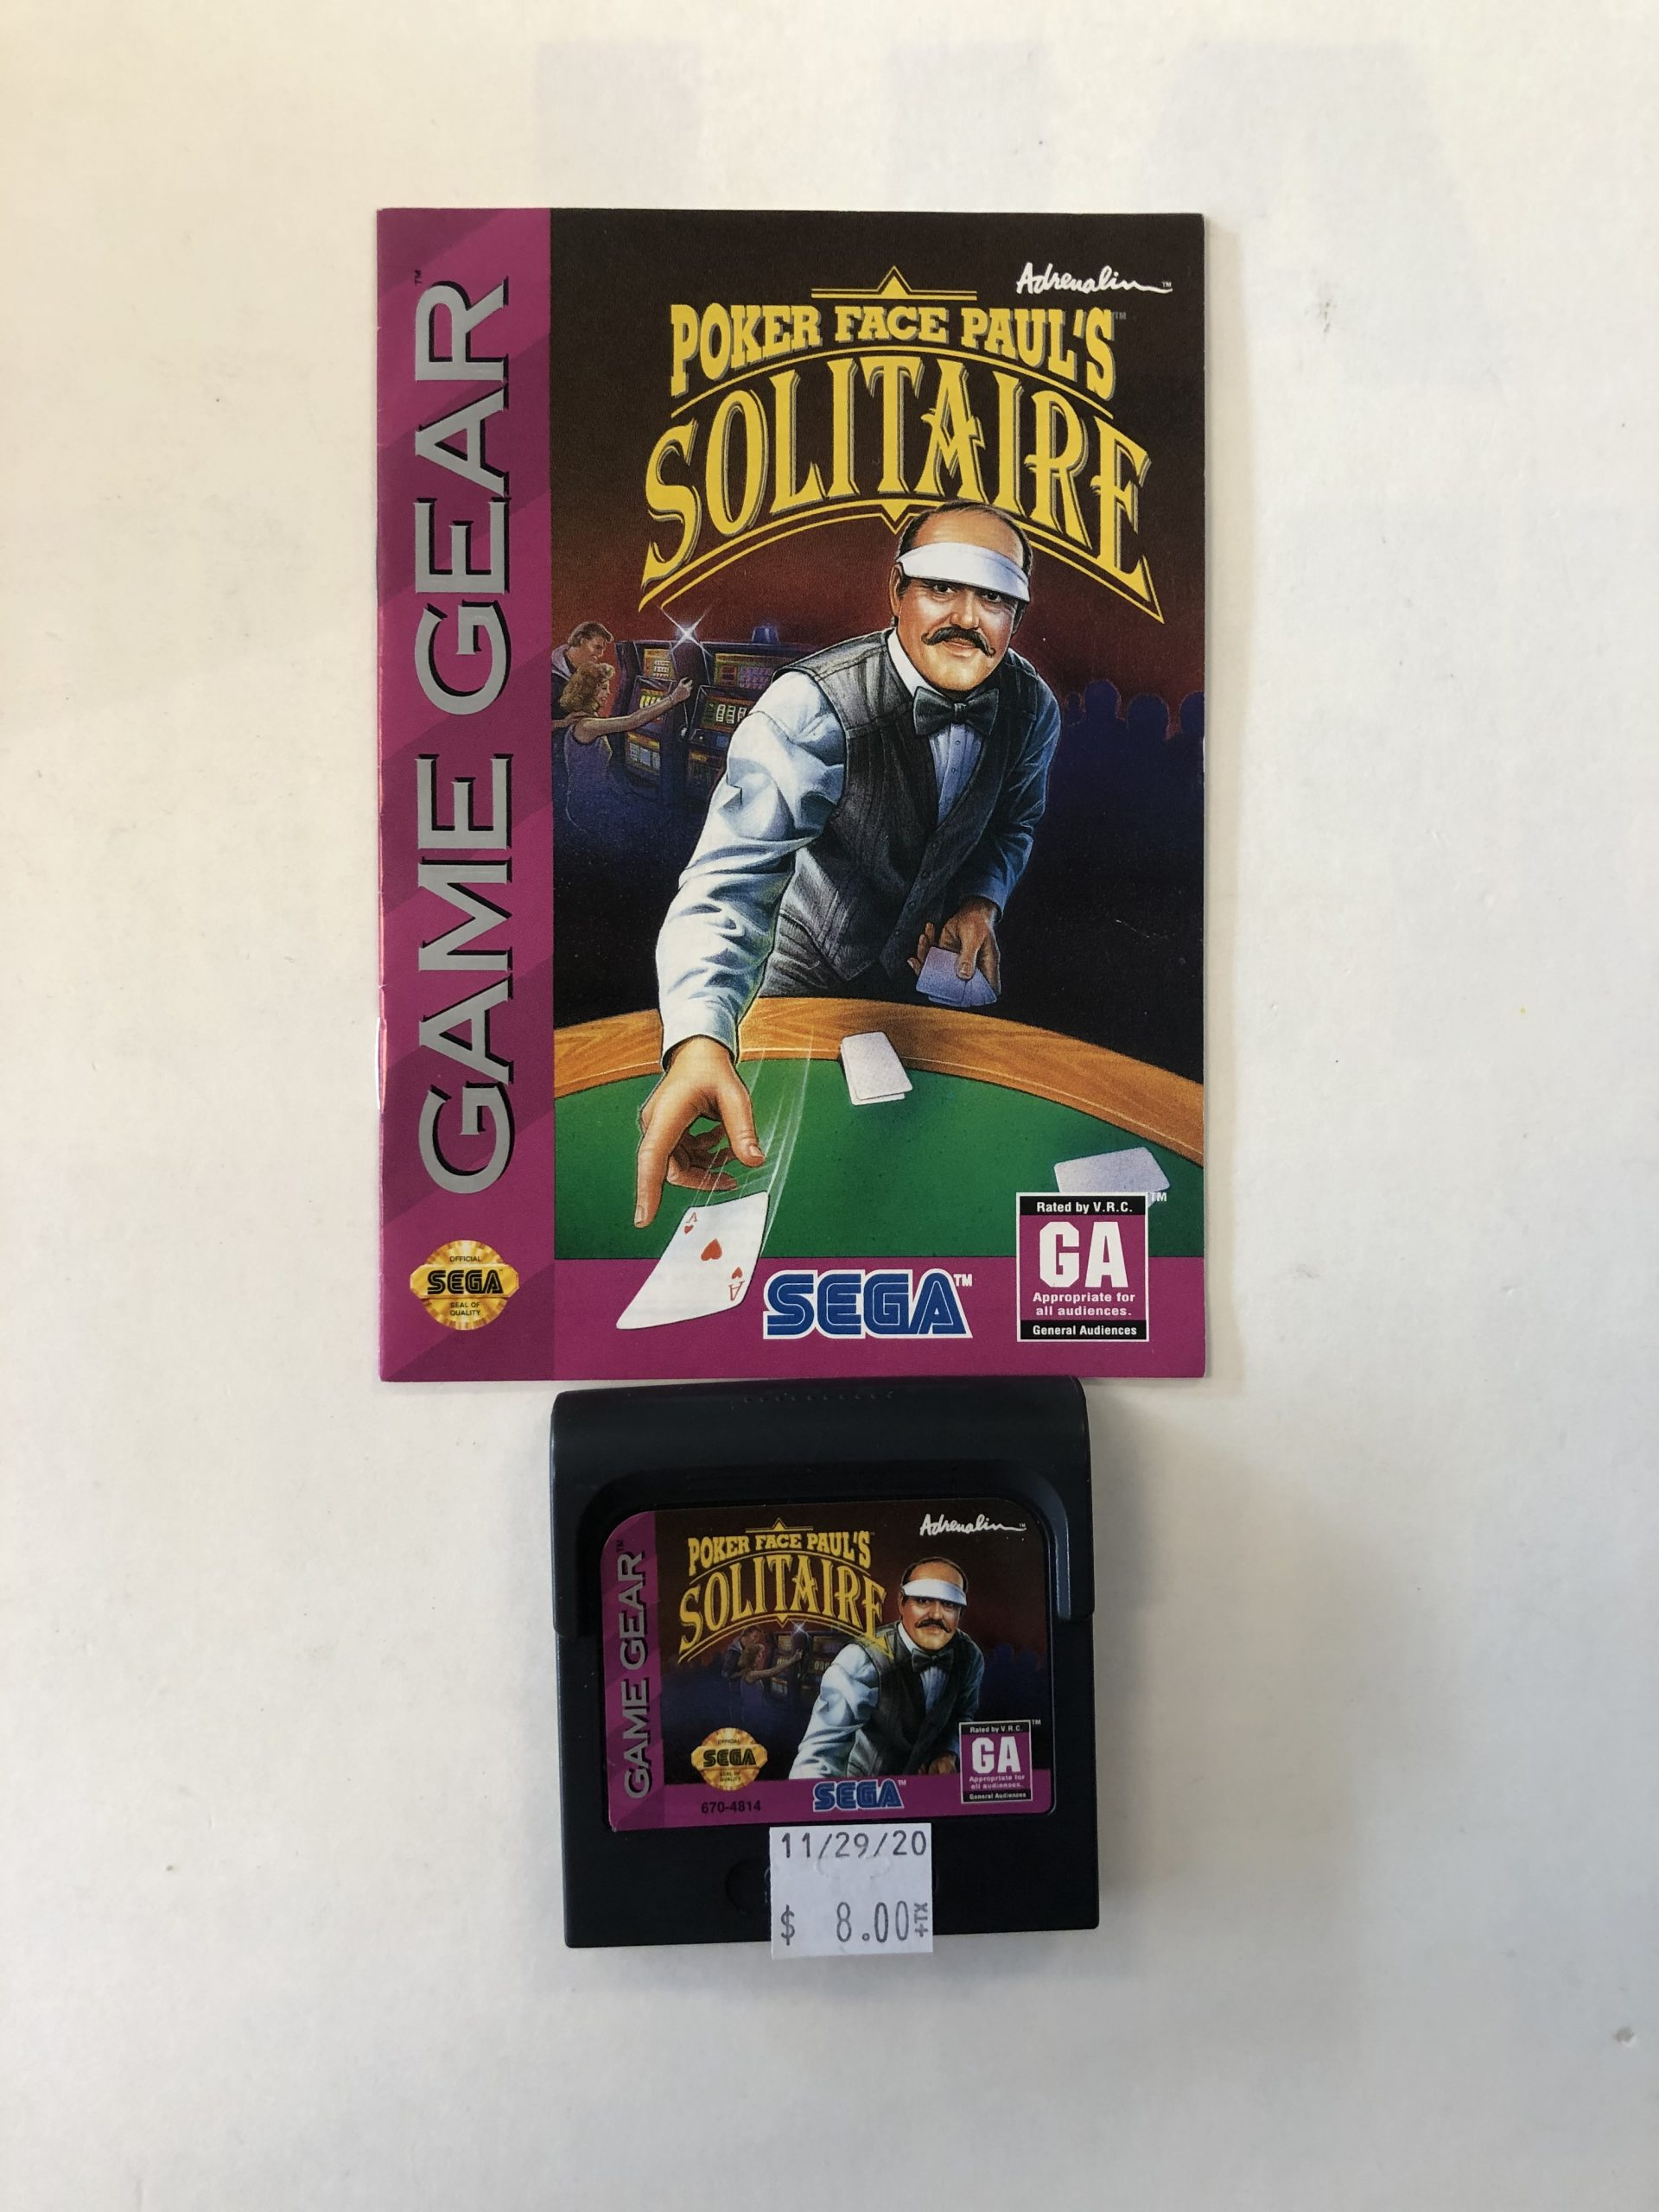 Poker Face Paul's Solitaire Cartridge And Manual Game Gear